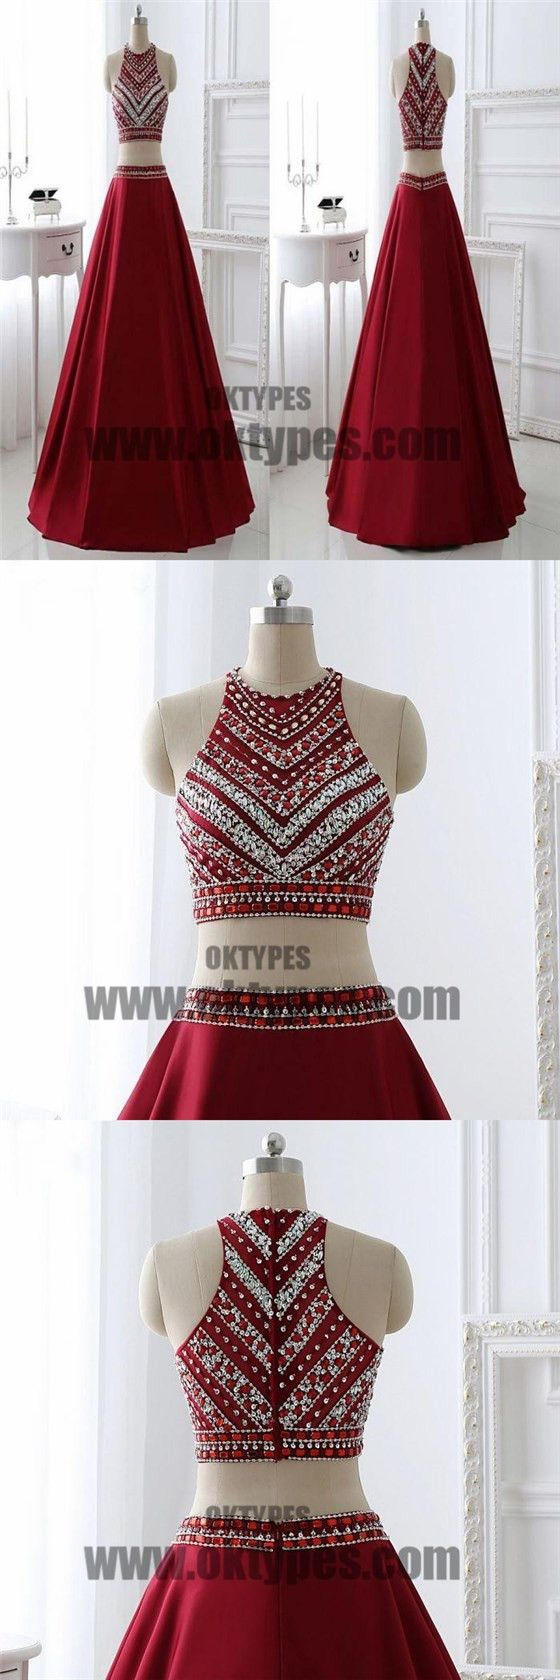 Red two piece beading prom dresses halter prom dresses zipper prom